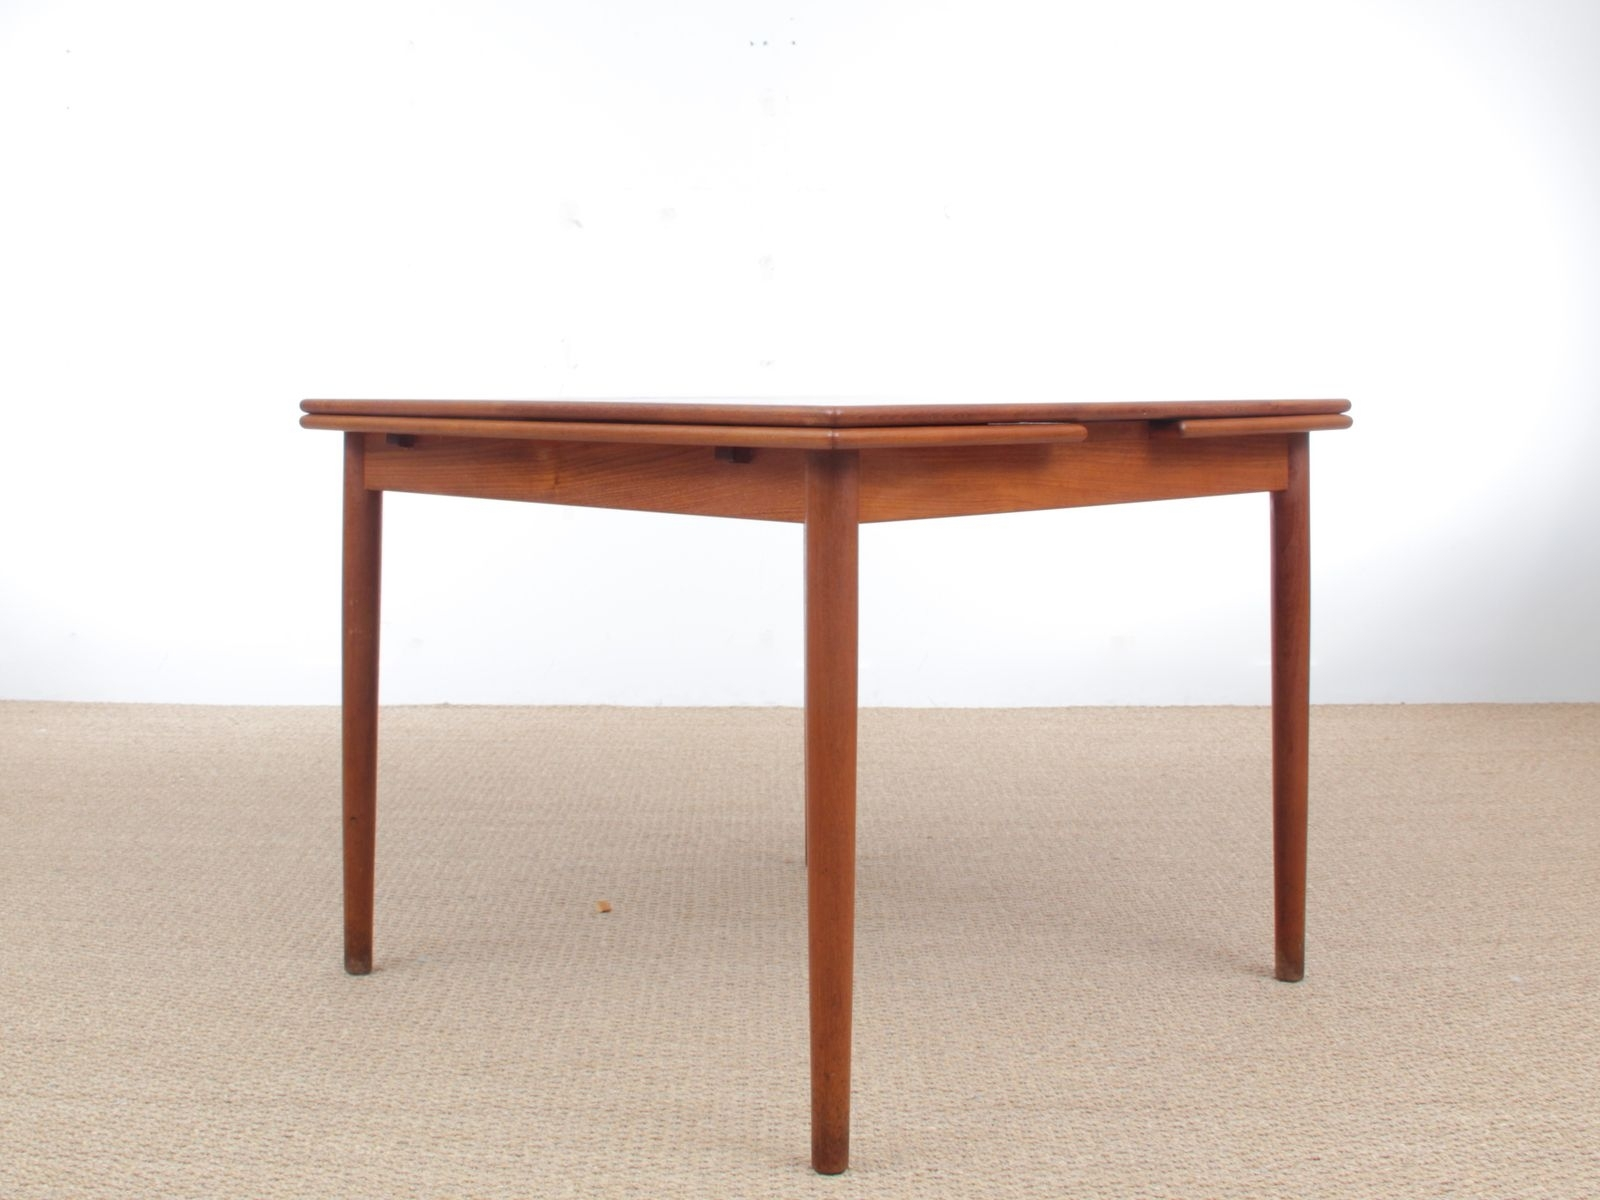 Teak Dining Table, 1960S For Sale At Pamono Inside Most Recent Lassen Extension Rectangle Dining Tables (Image 16 of 20)